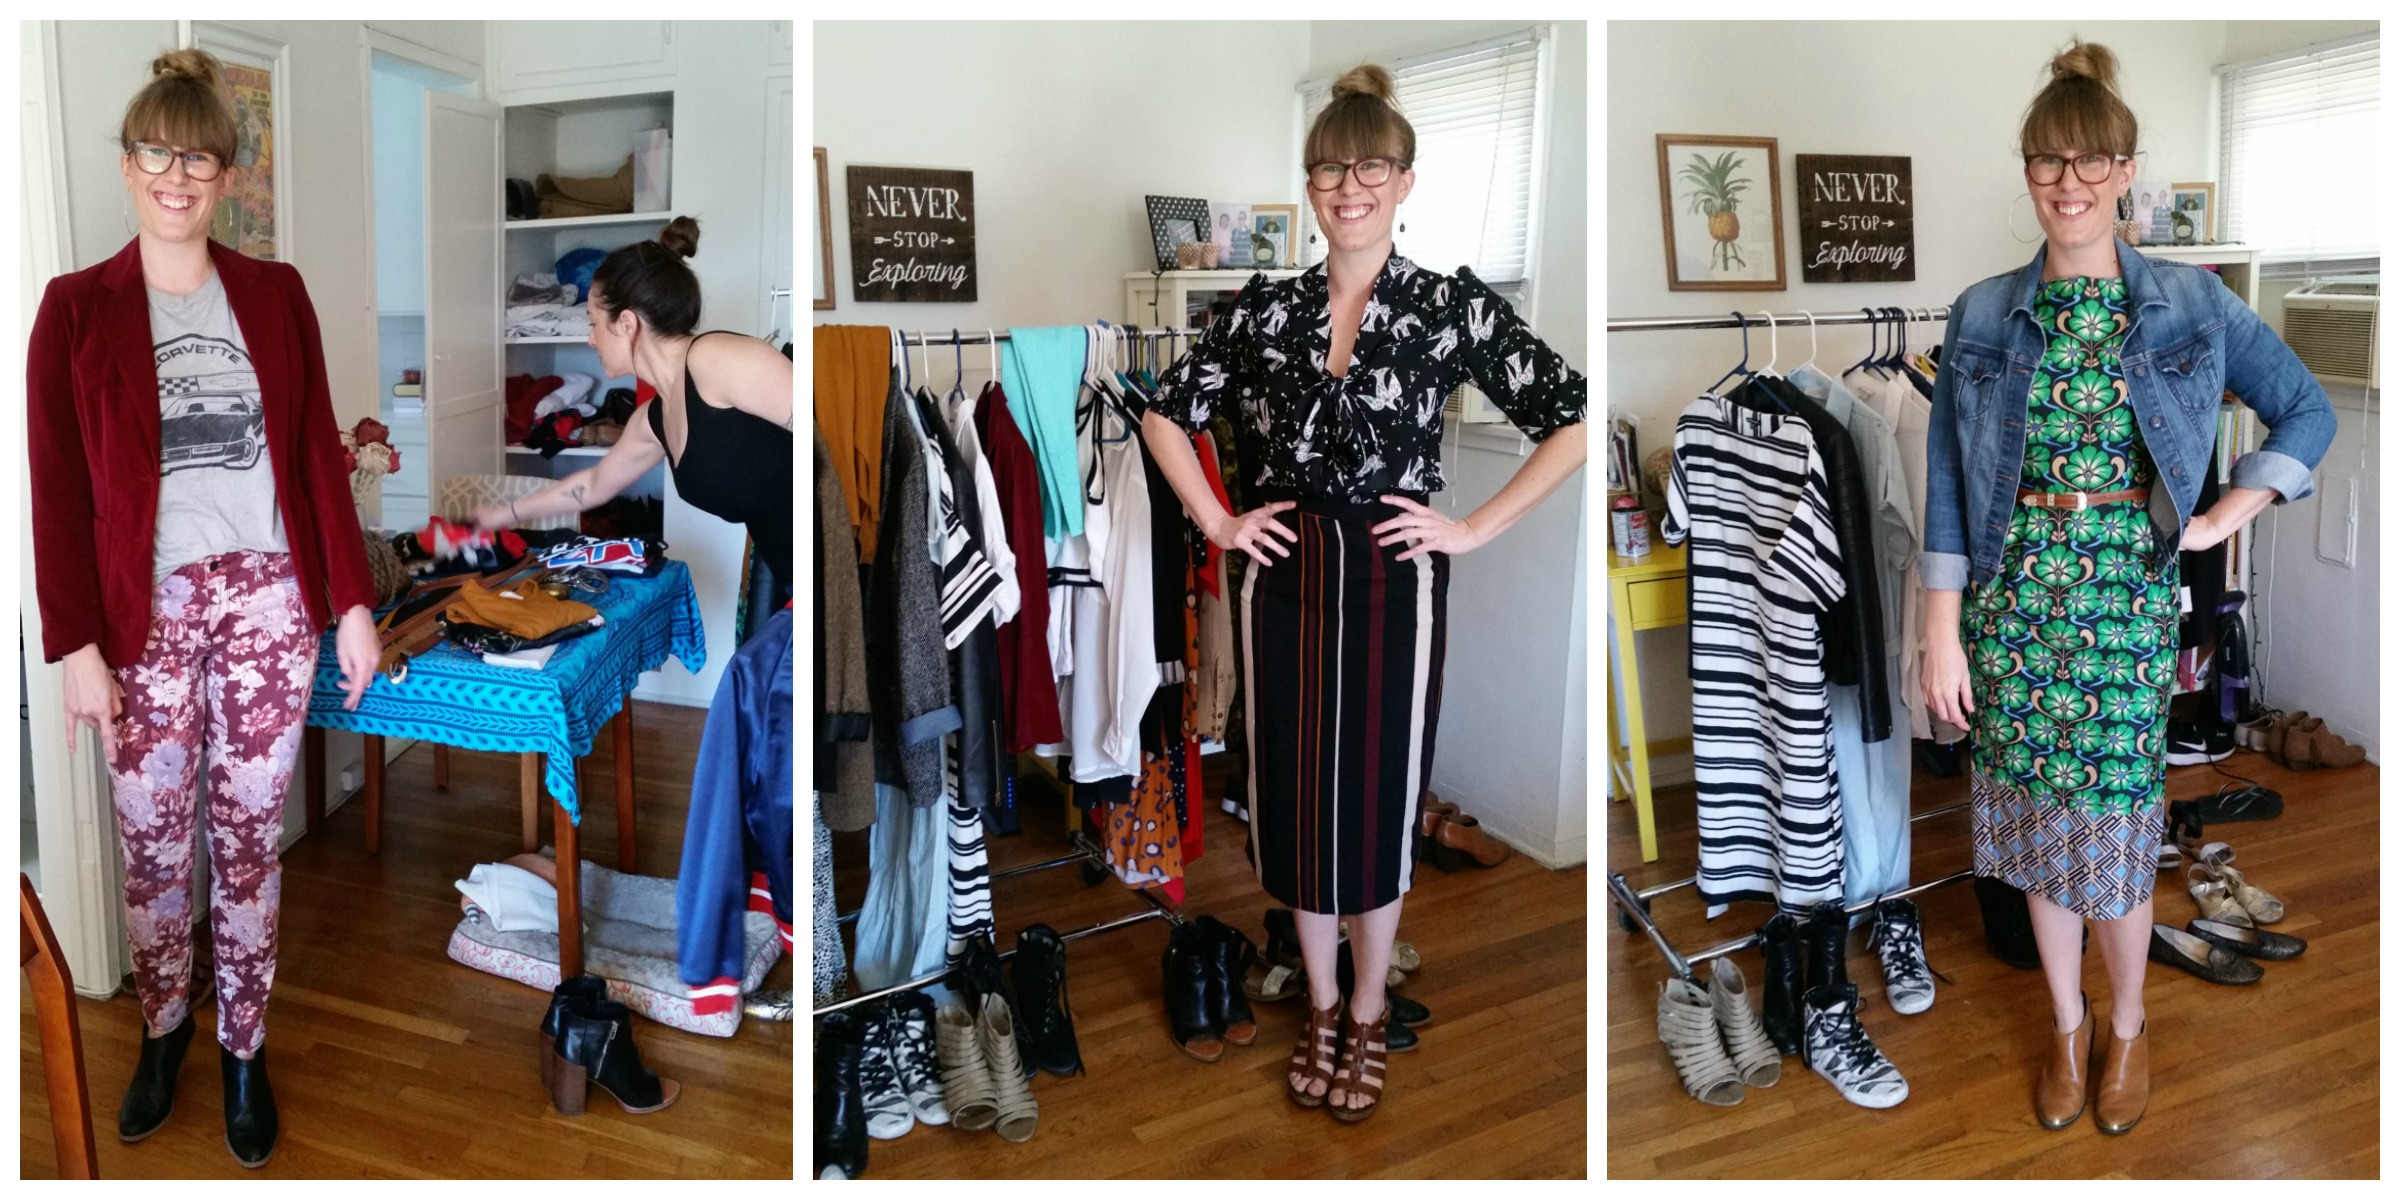 A professional stylist showed us how to reinvent our spring workwear wardrobe, no shopping required